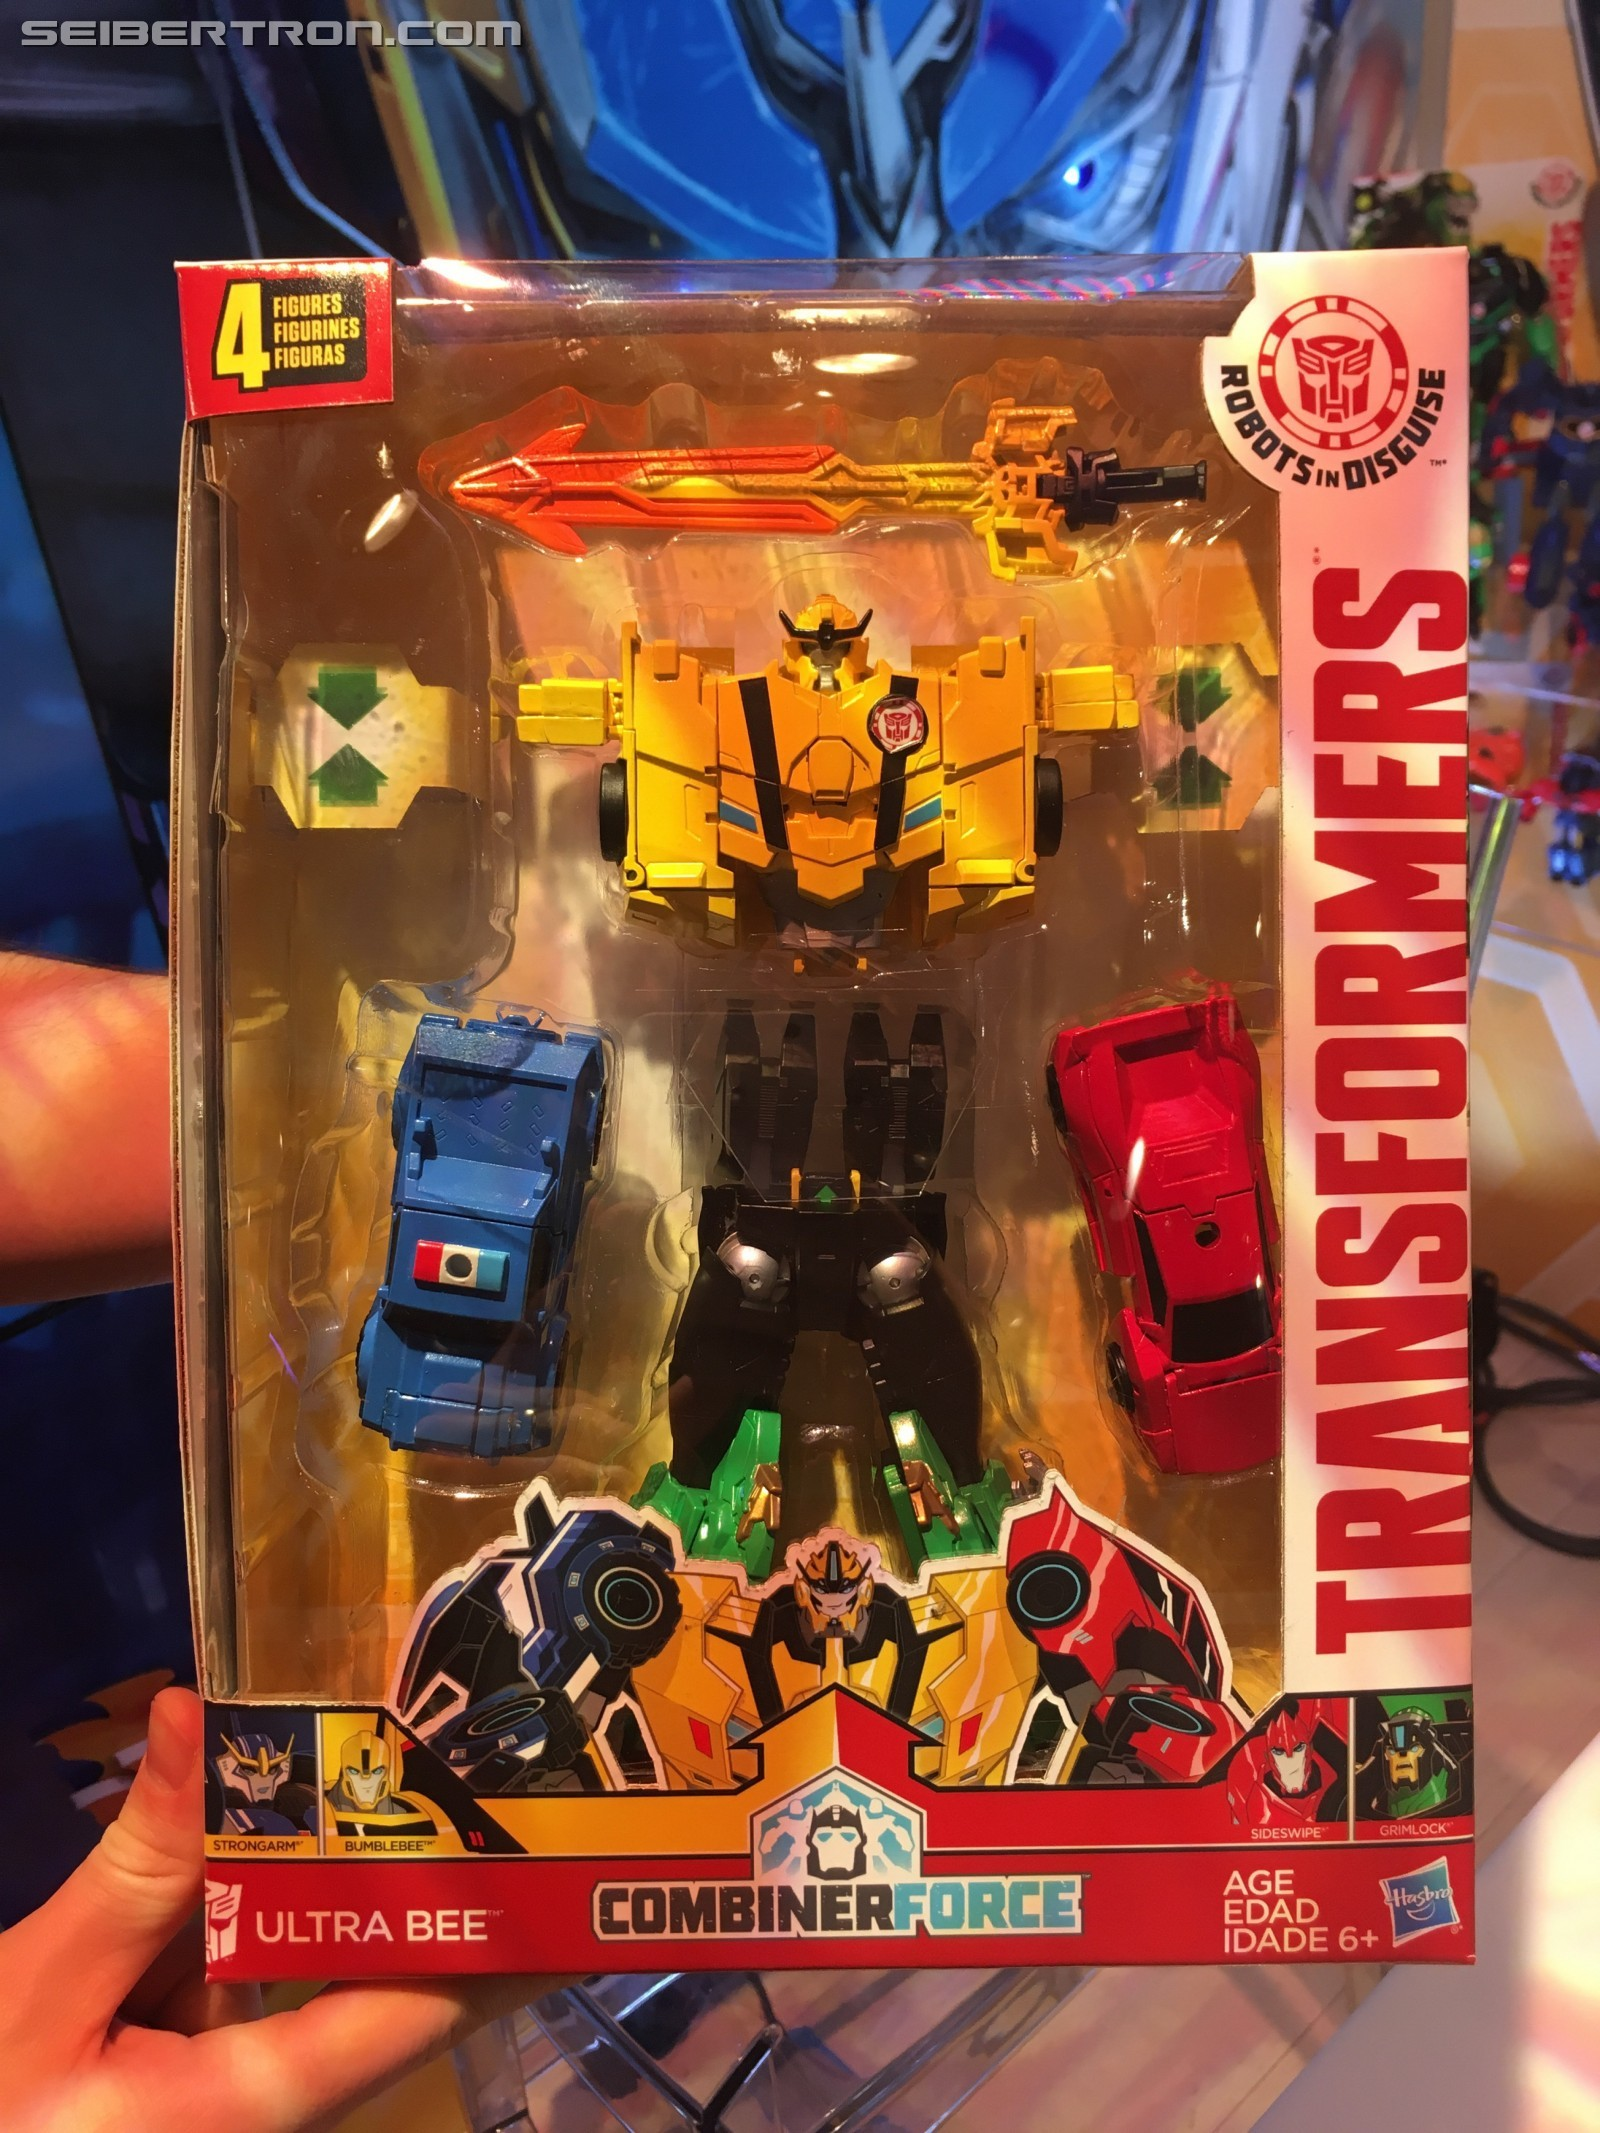 Transformers News: Toy Fair 2017 Showroom Images of Transformers Robots in Disguise Combiner Force #HasbroToyFair #TFNY